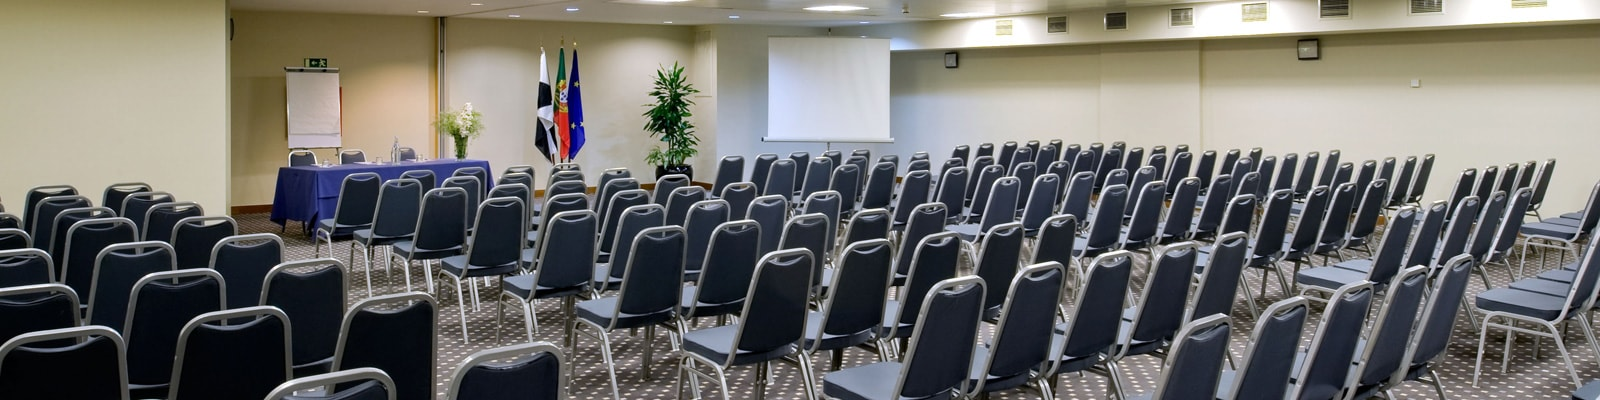 Meetings & Events Olissippo Hotels